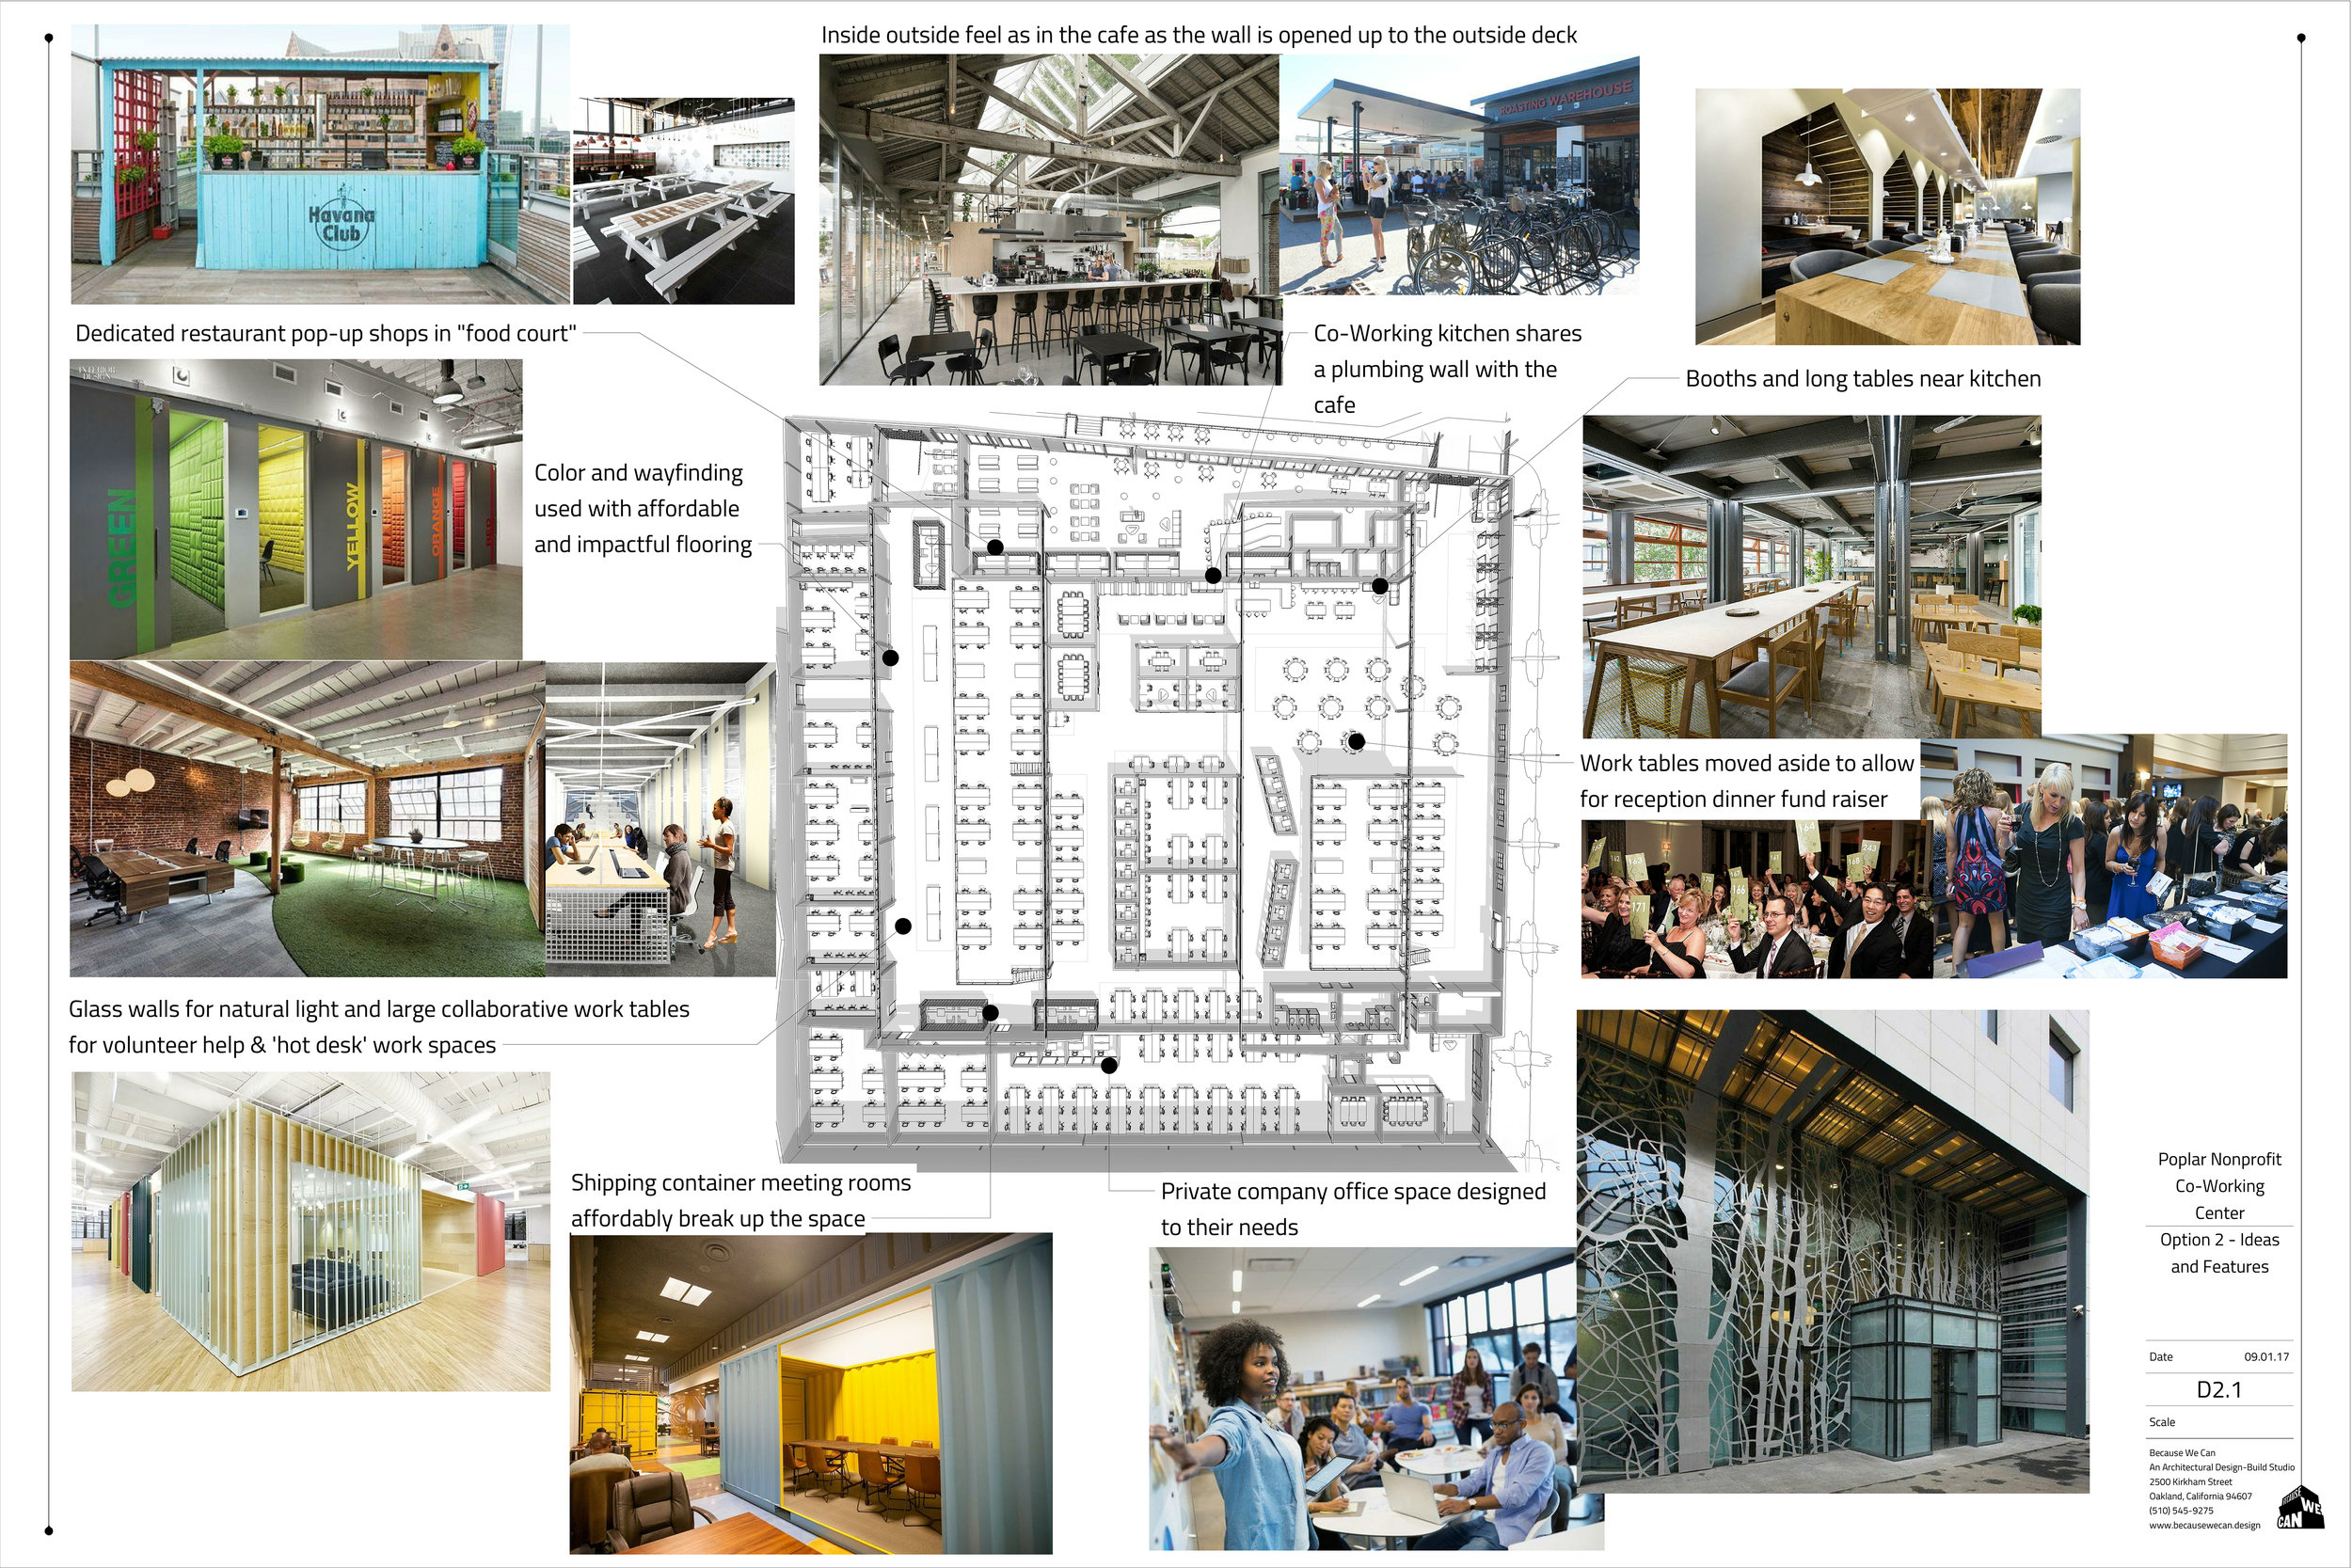 Floor plans and concept images to show a co-working office idea for this large industrial space.